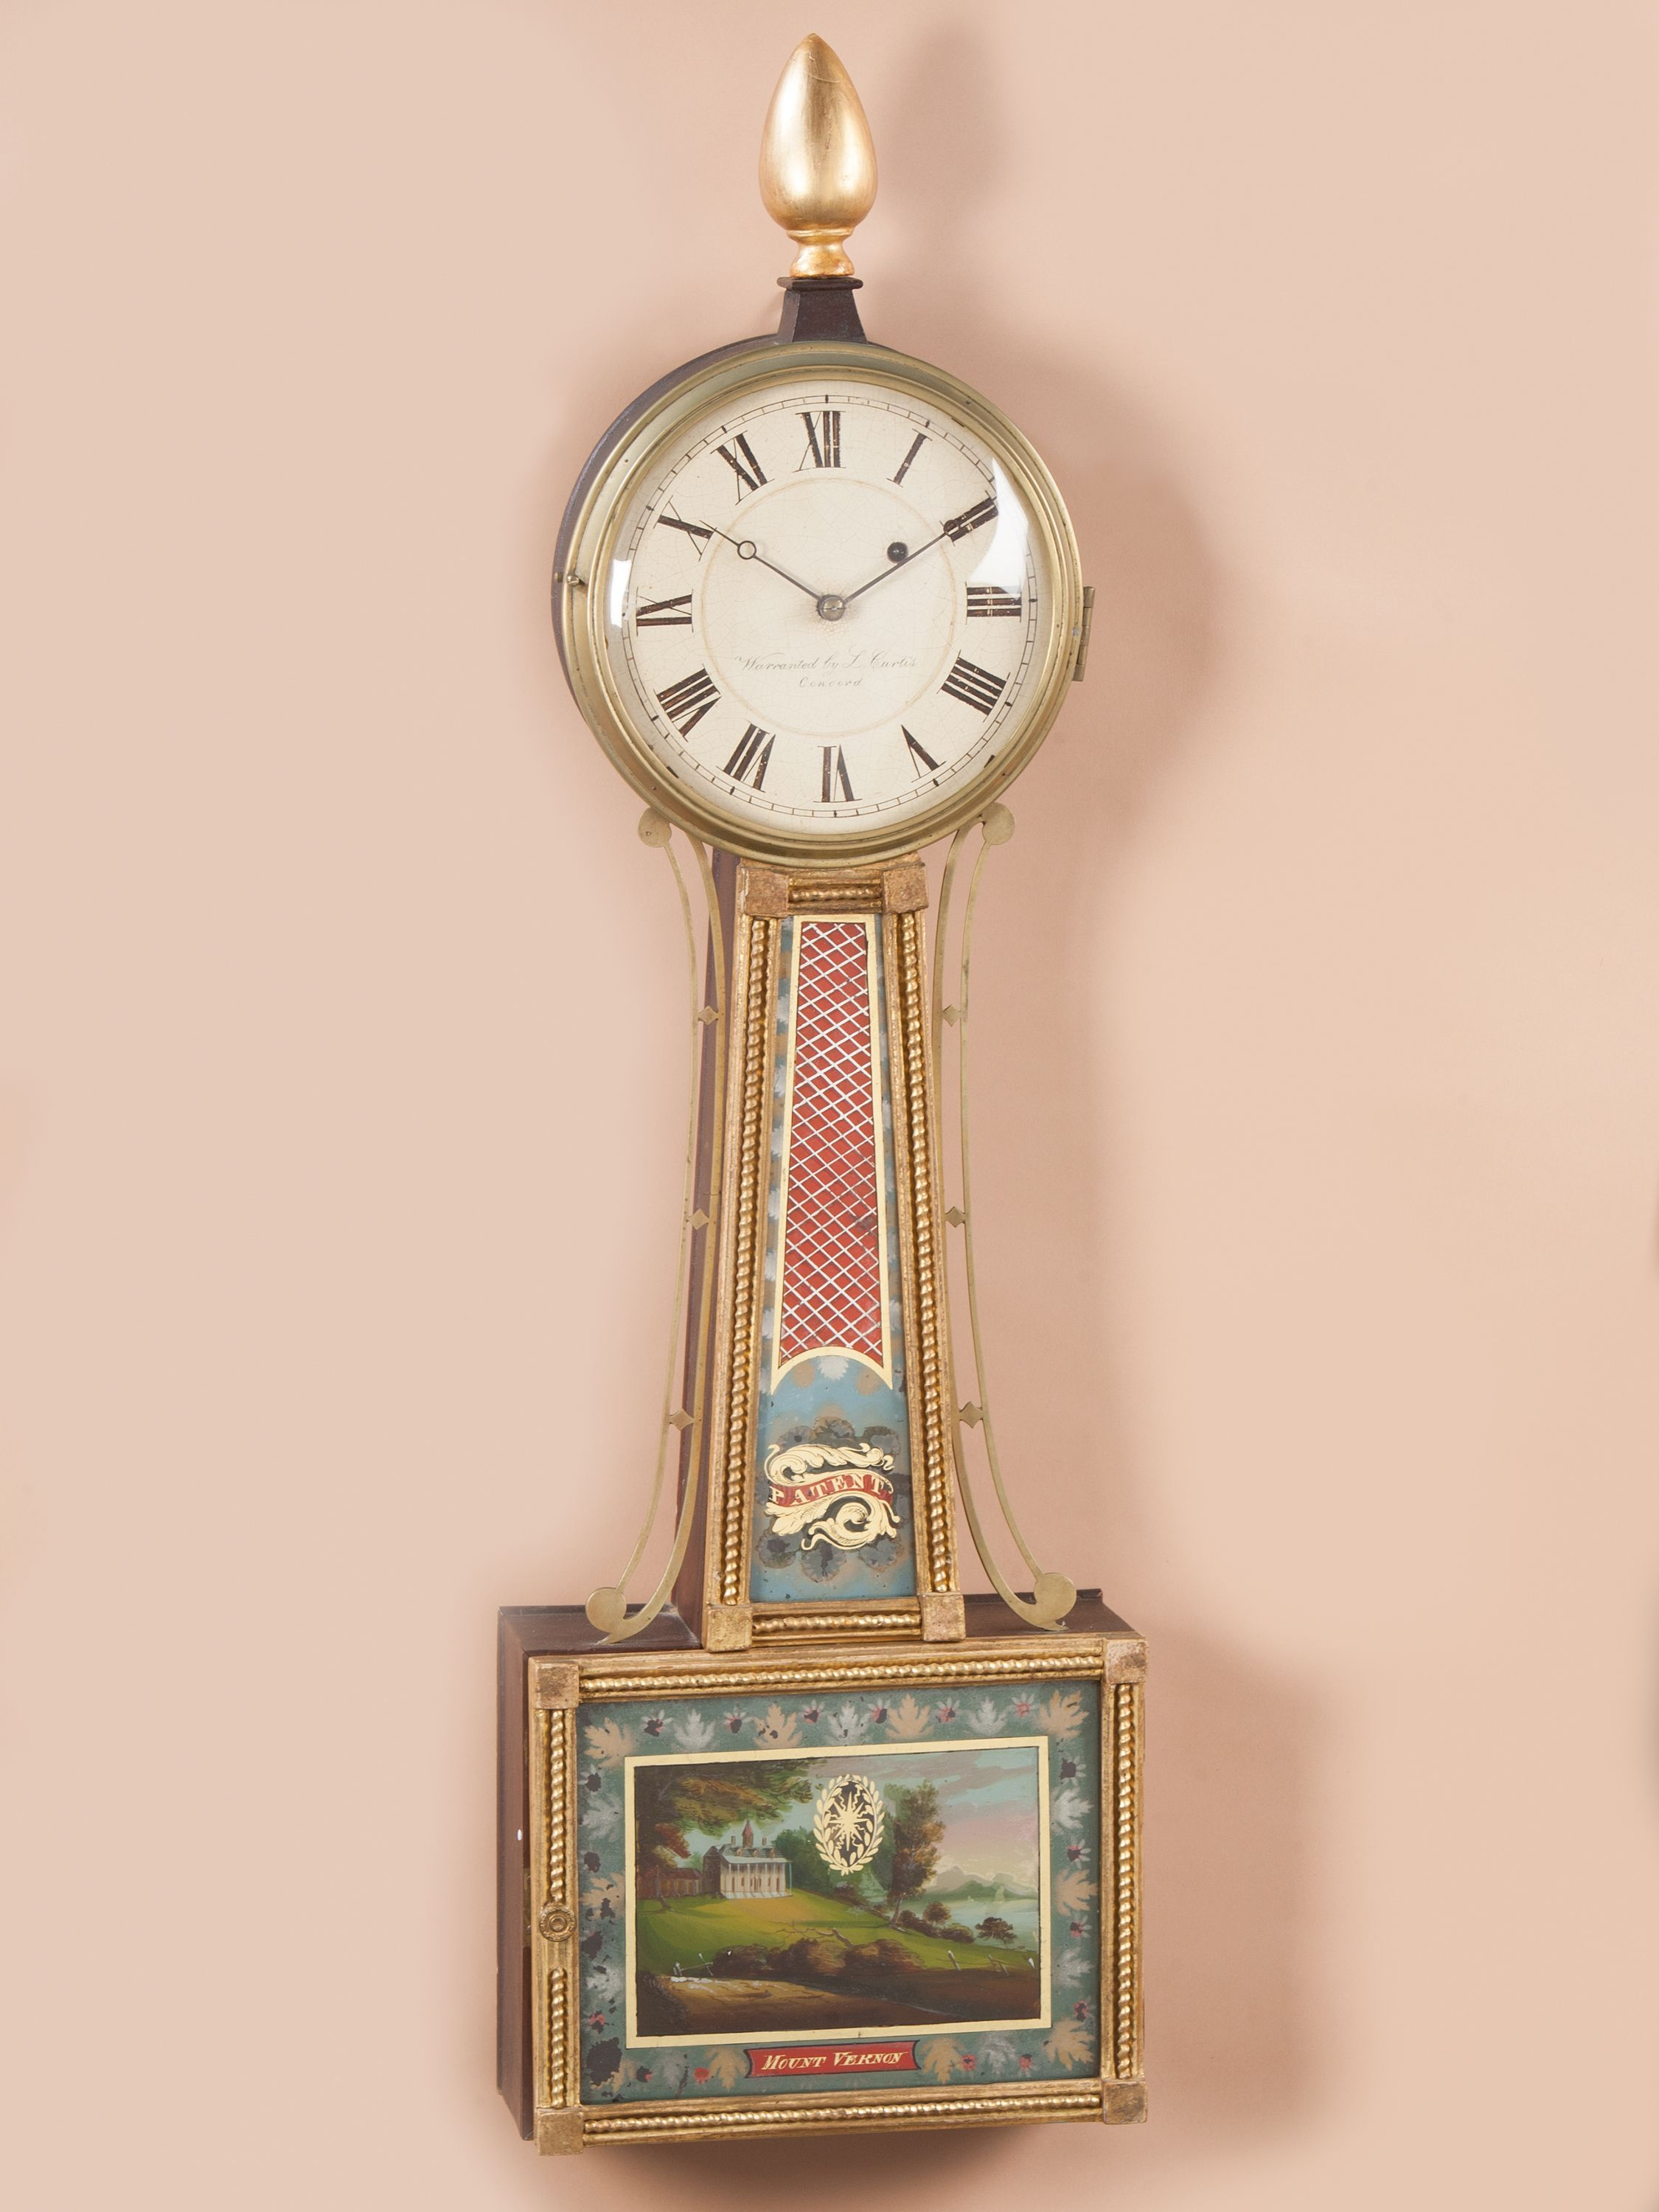 FEDERAL BANJO CLOCK WITH THE SCENE OF MOUNT VERNON ON ITS LOWER GLASS, Lemuel Curtis, Concord, Massachusetts, ca. 1815. Frank Levy Antiques. Primary Wood: Mahogany Secondary Wood: Pine Height: 34 inches Width: 9 inches